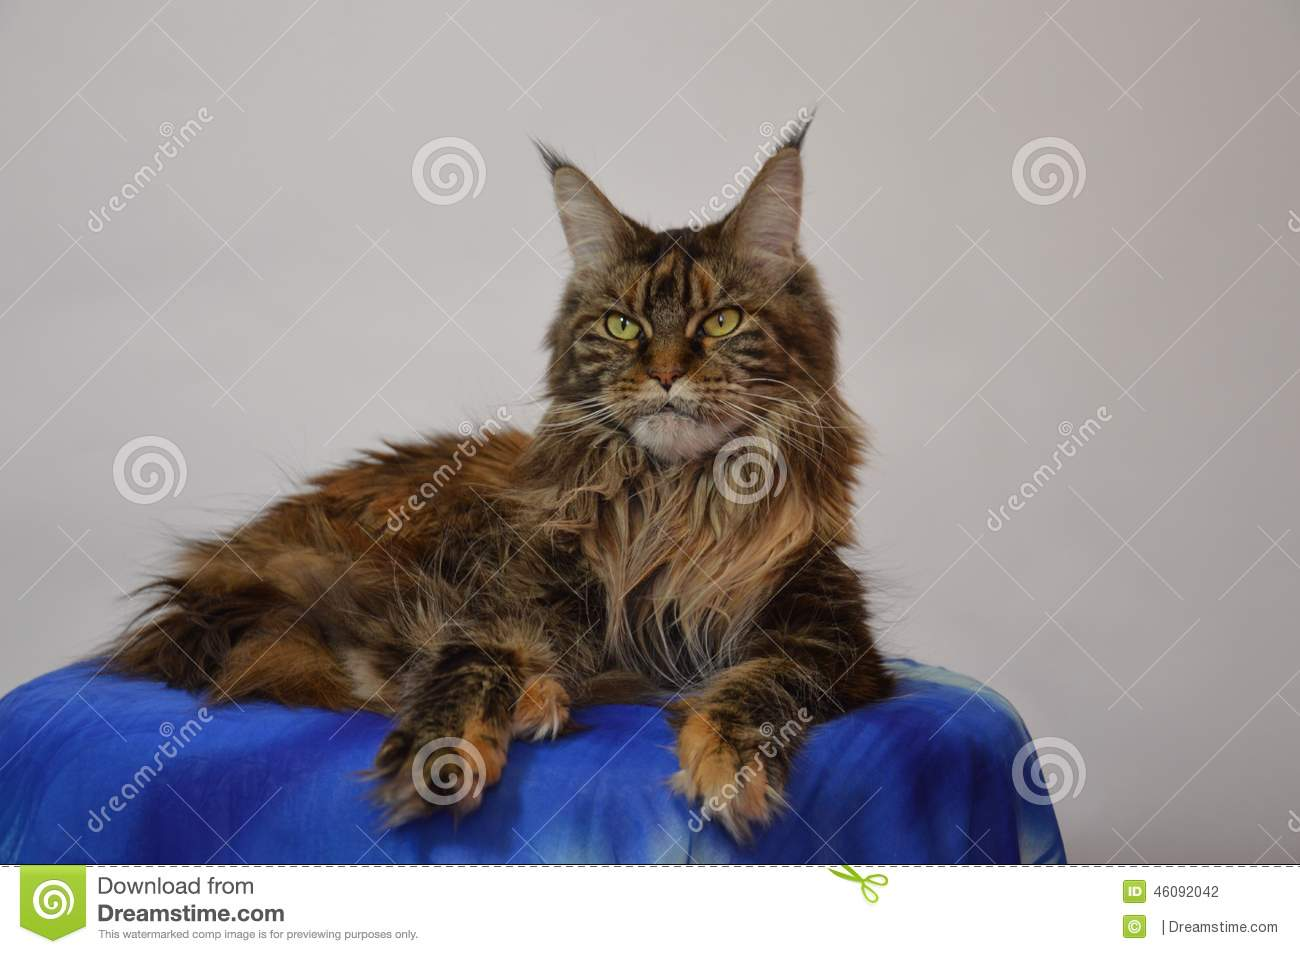 Cat Maine Coon with long beautiful tassels on the ears